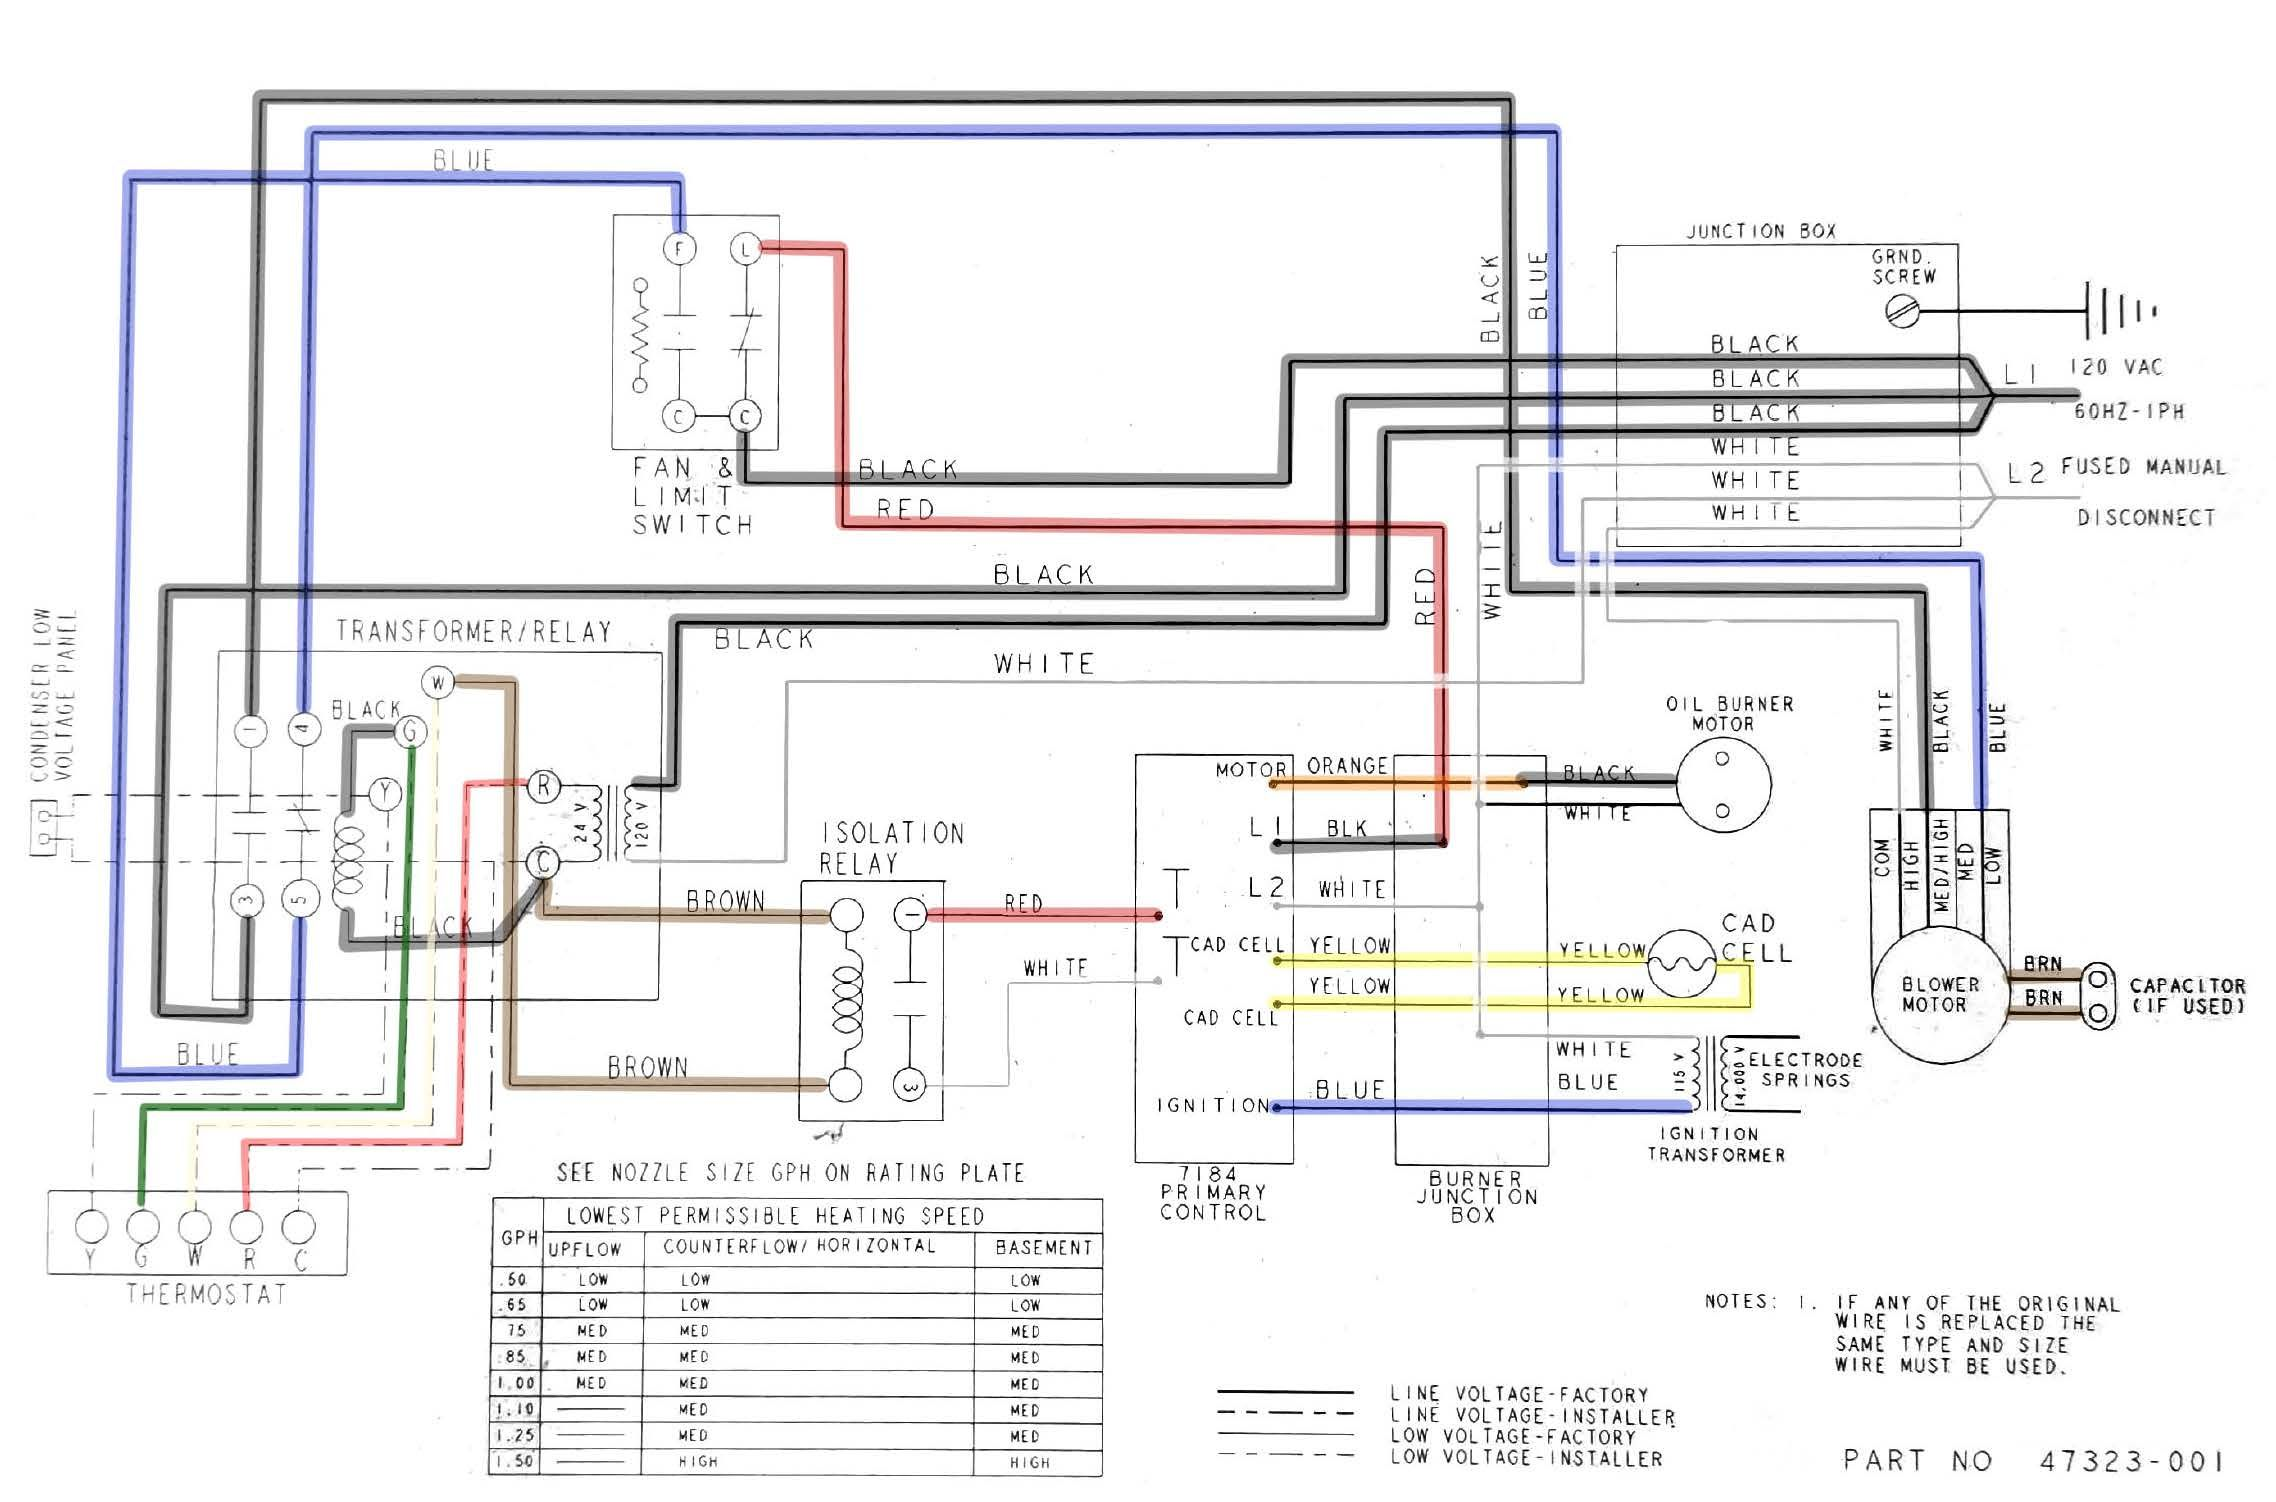 Wiring Schematic Diagram For A Patriot 80 Plus Oil Furnace Oil Furnace Diagram Furnace